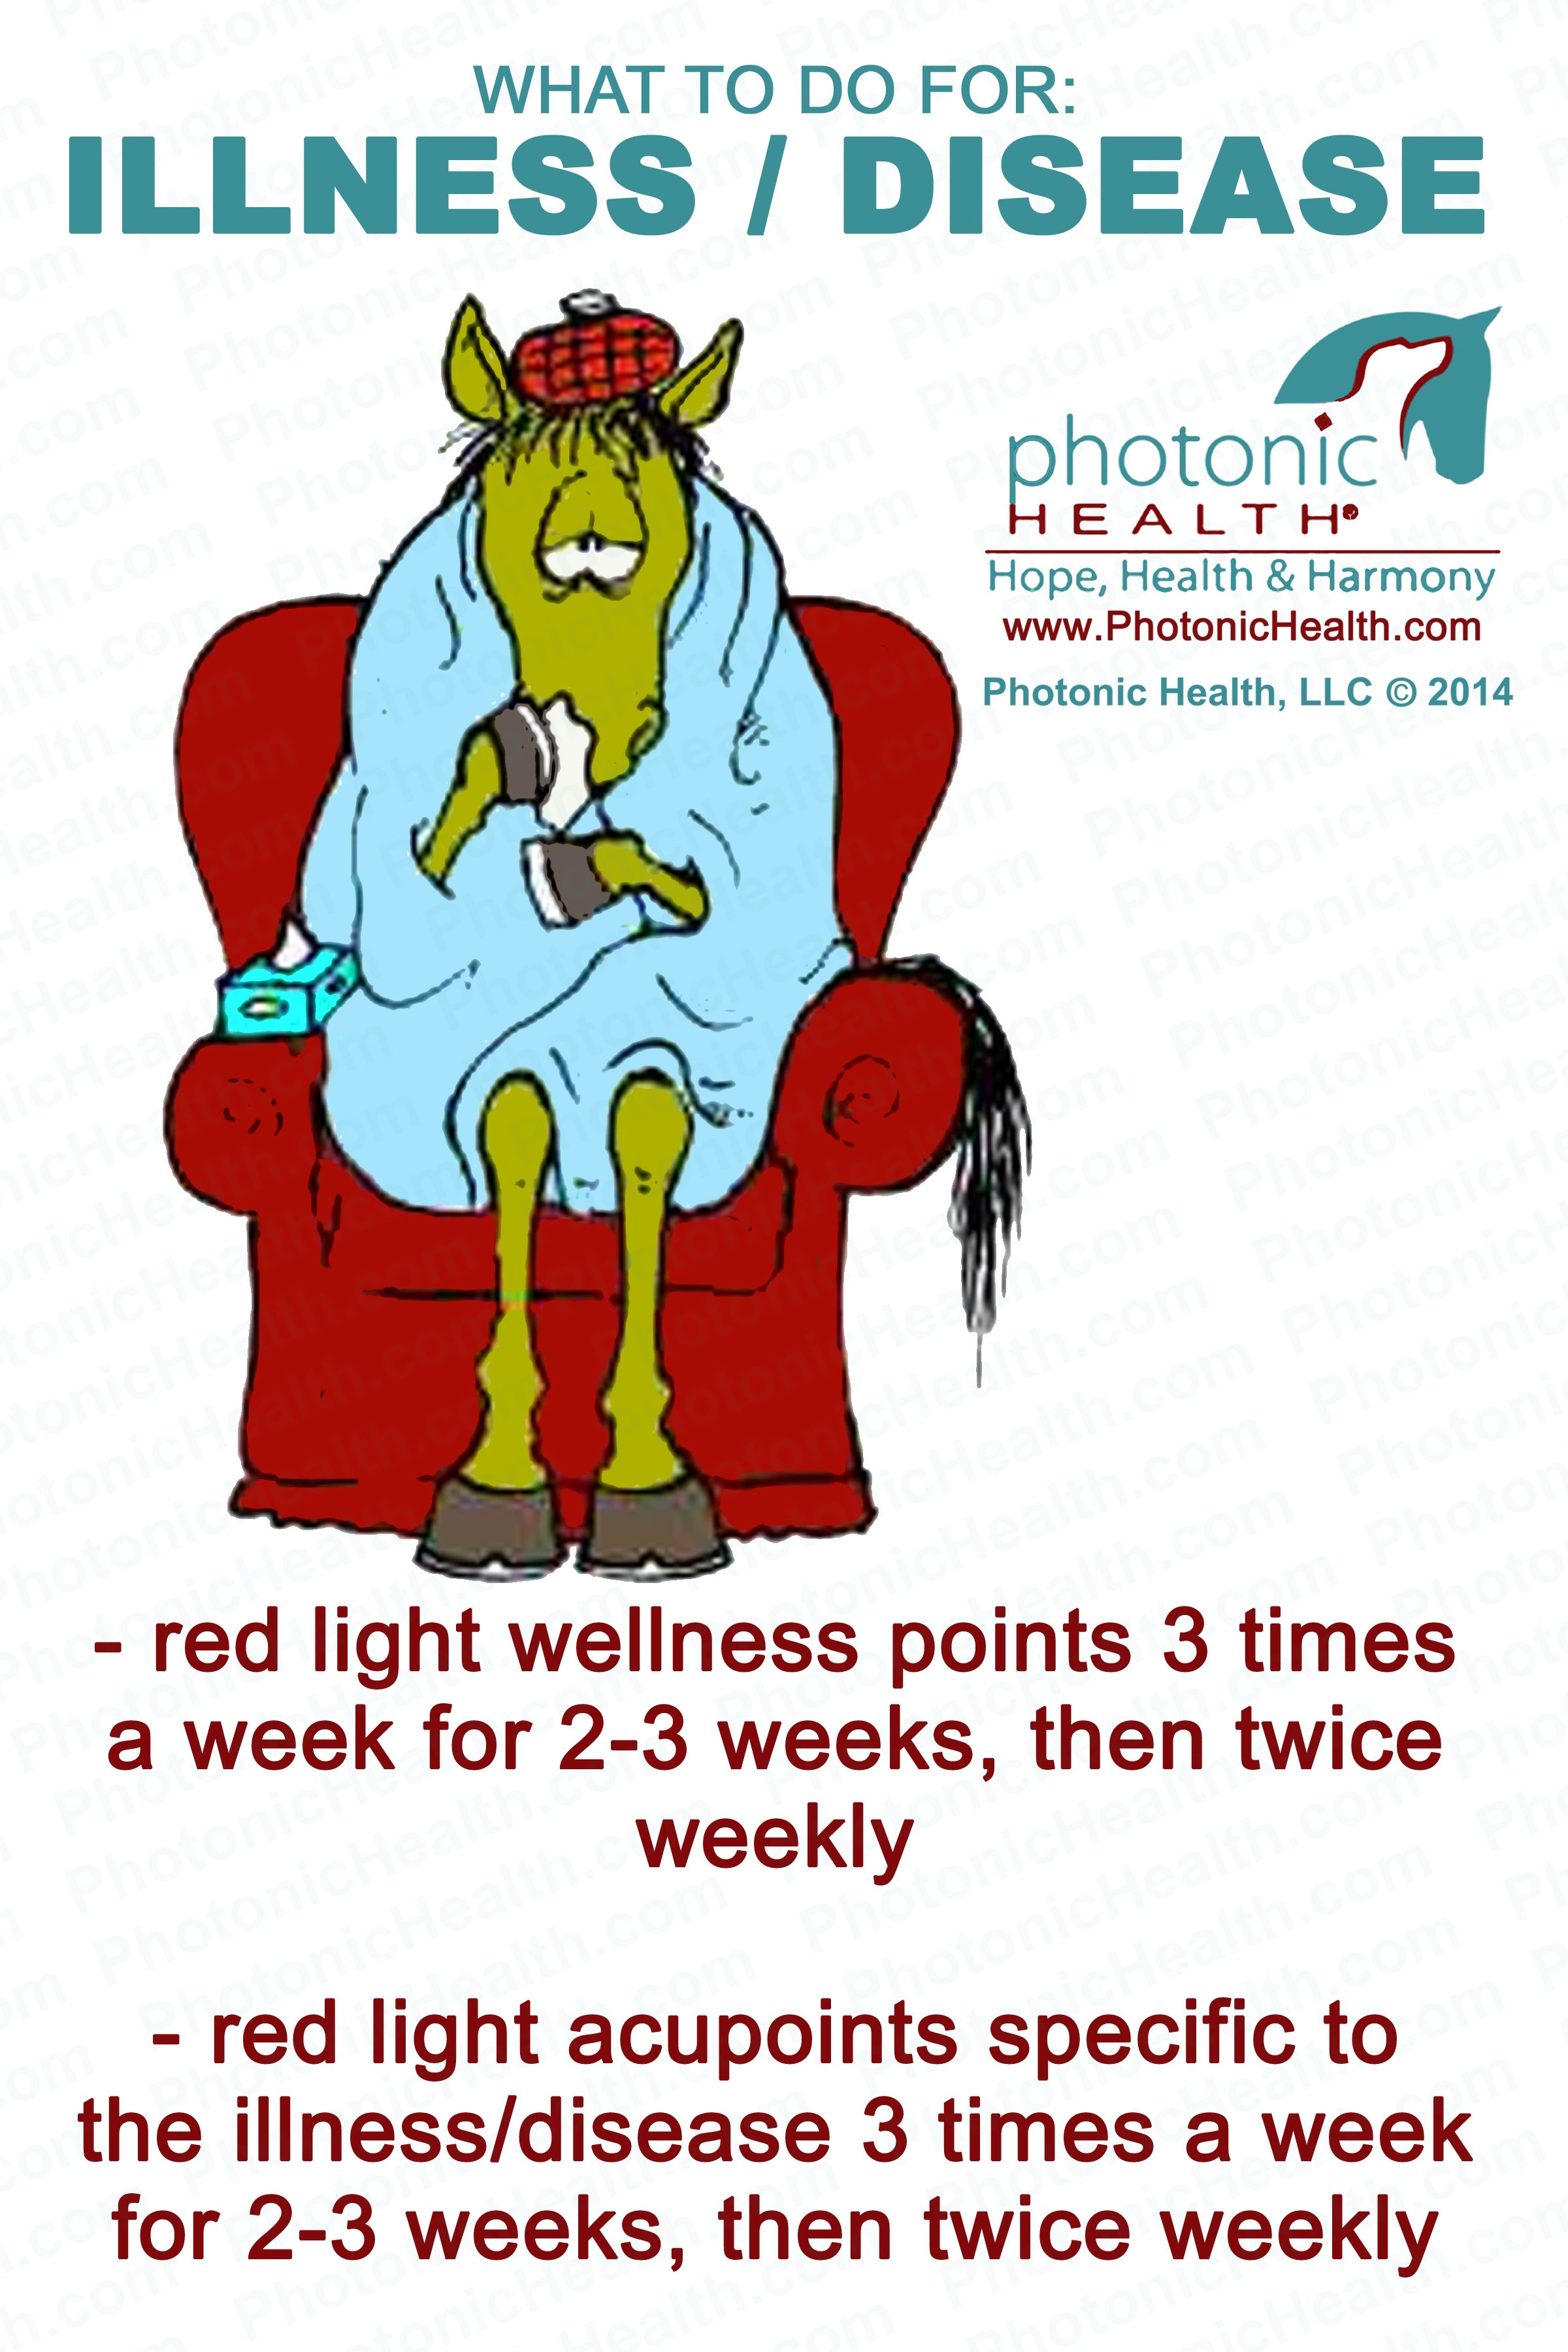 For Just About Any Illness Or Disease The Photonic Health